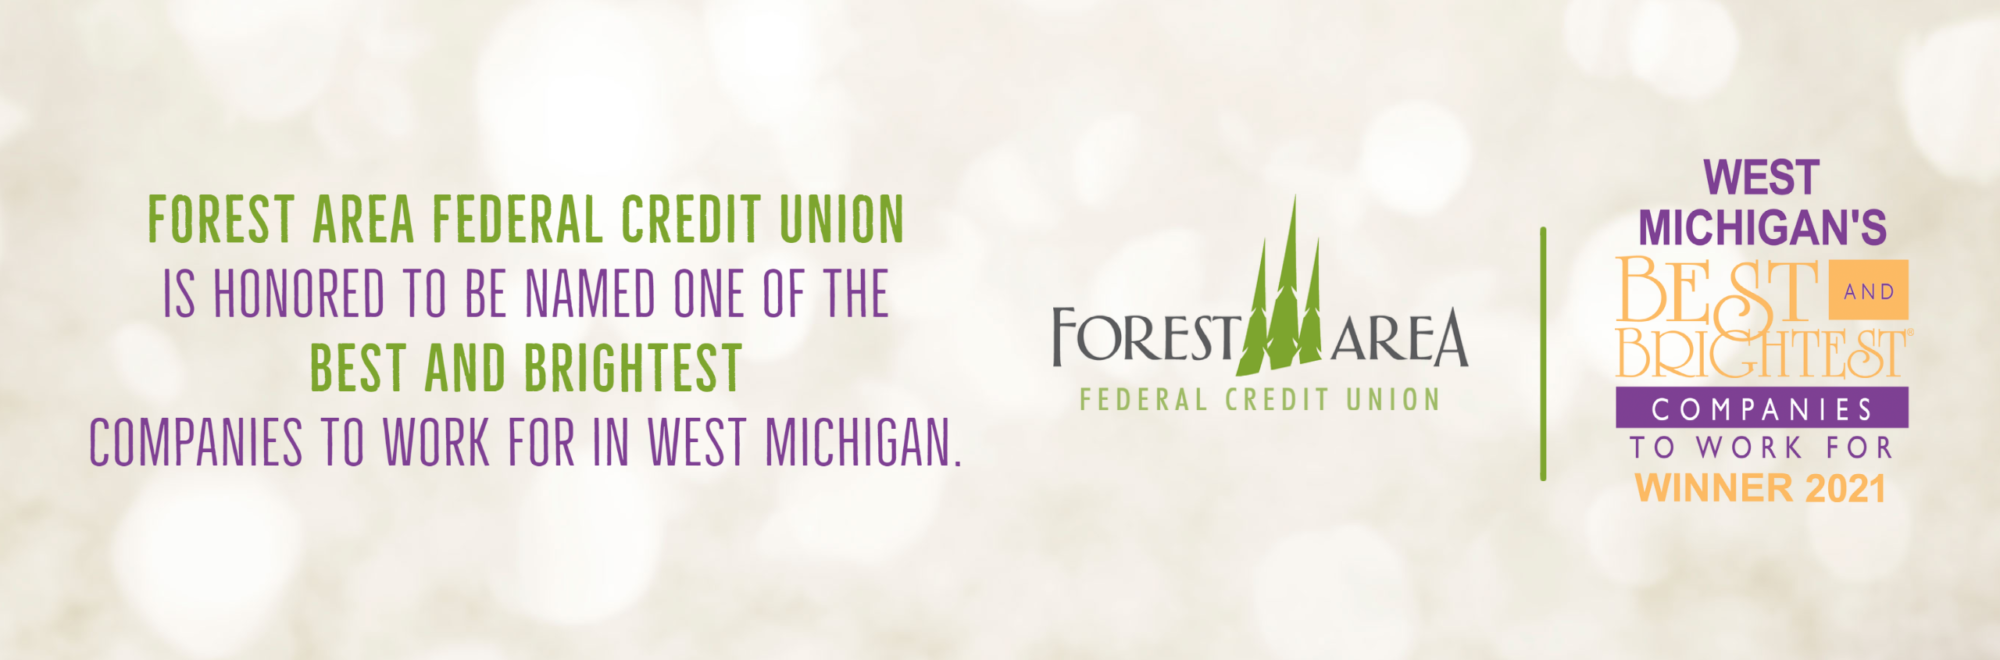 Forest Area Federal Credit Union is honored to be named one of the best and brightest companies to work for in West Michigan